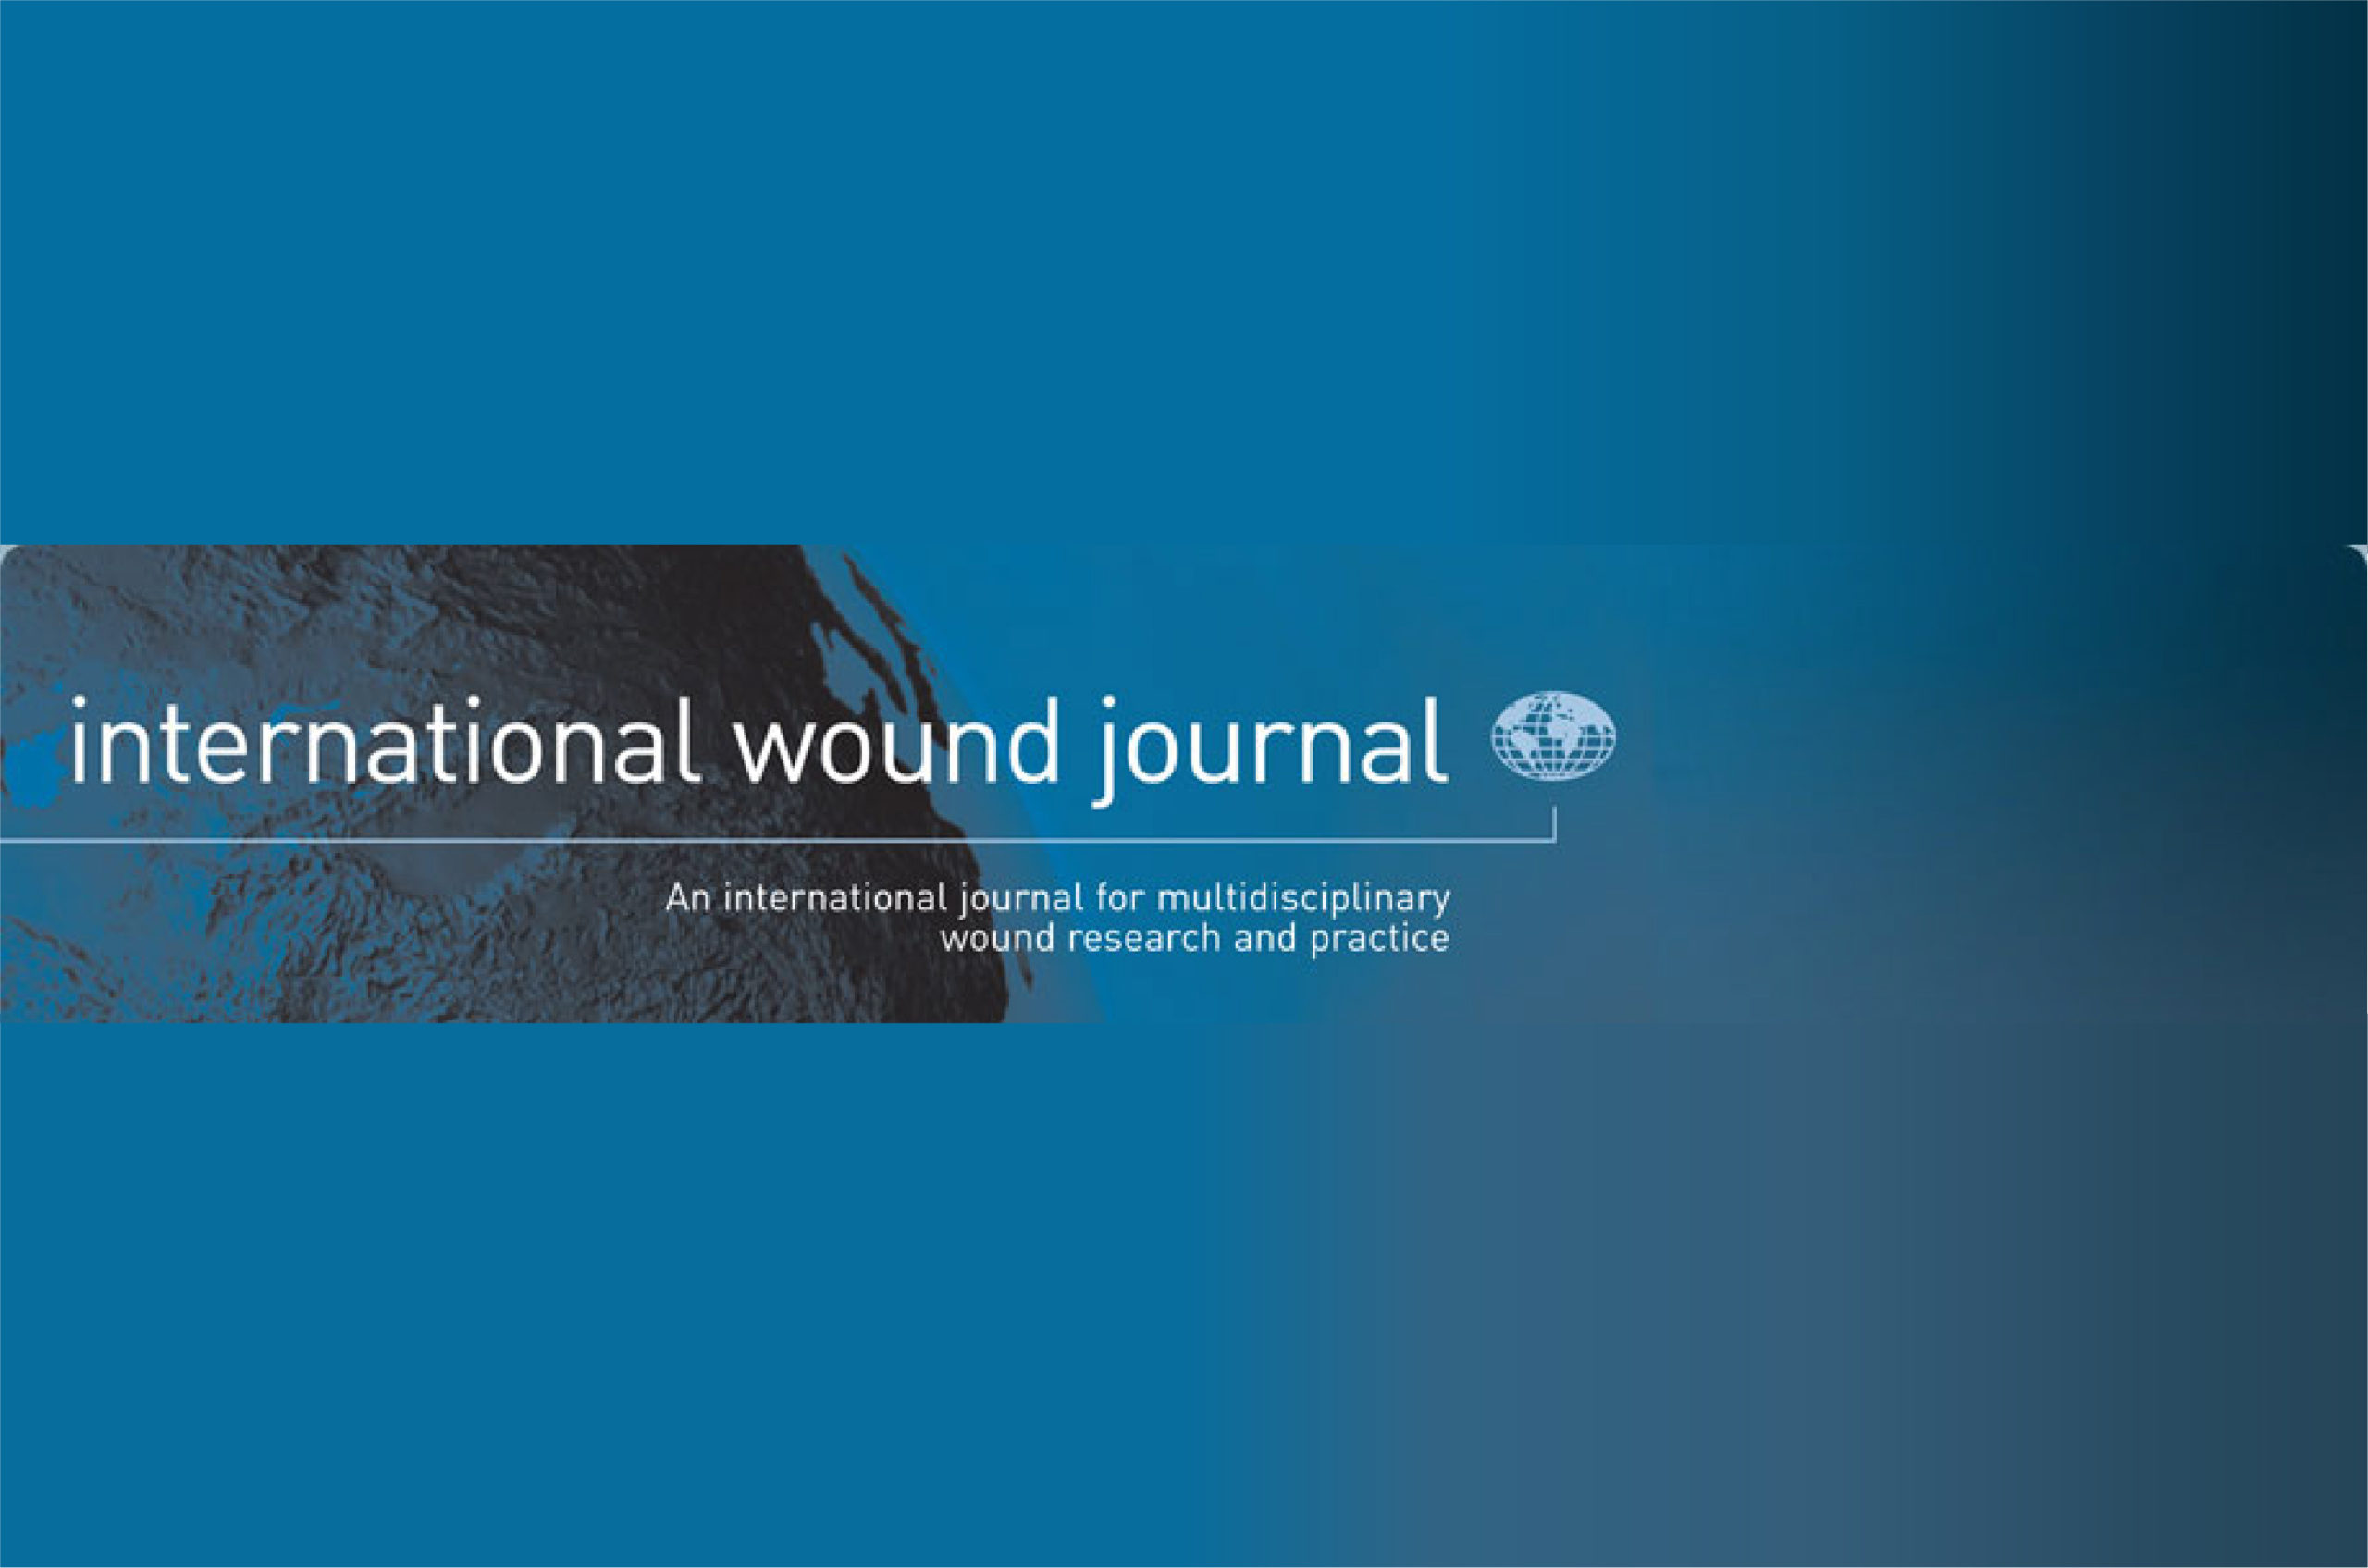 internation wound journal logo